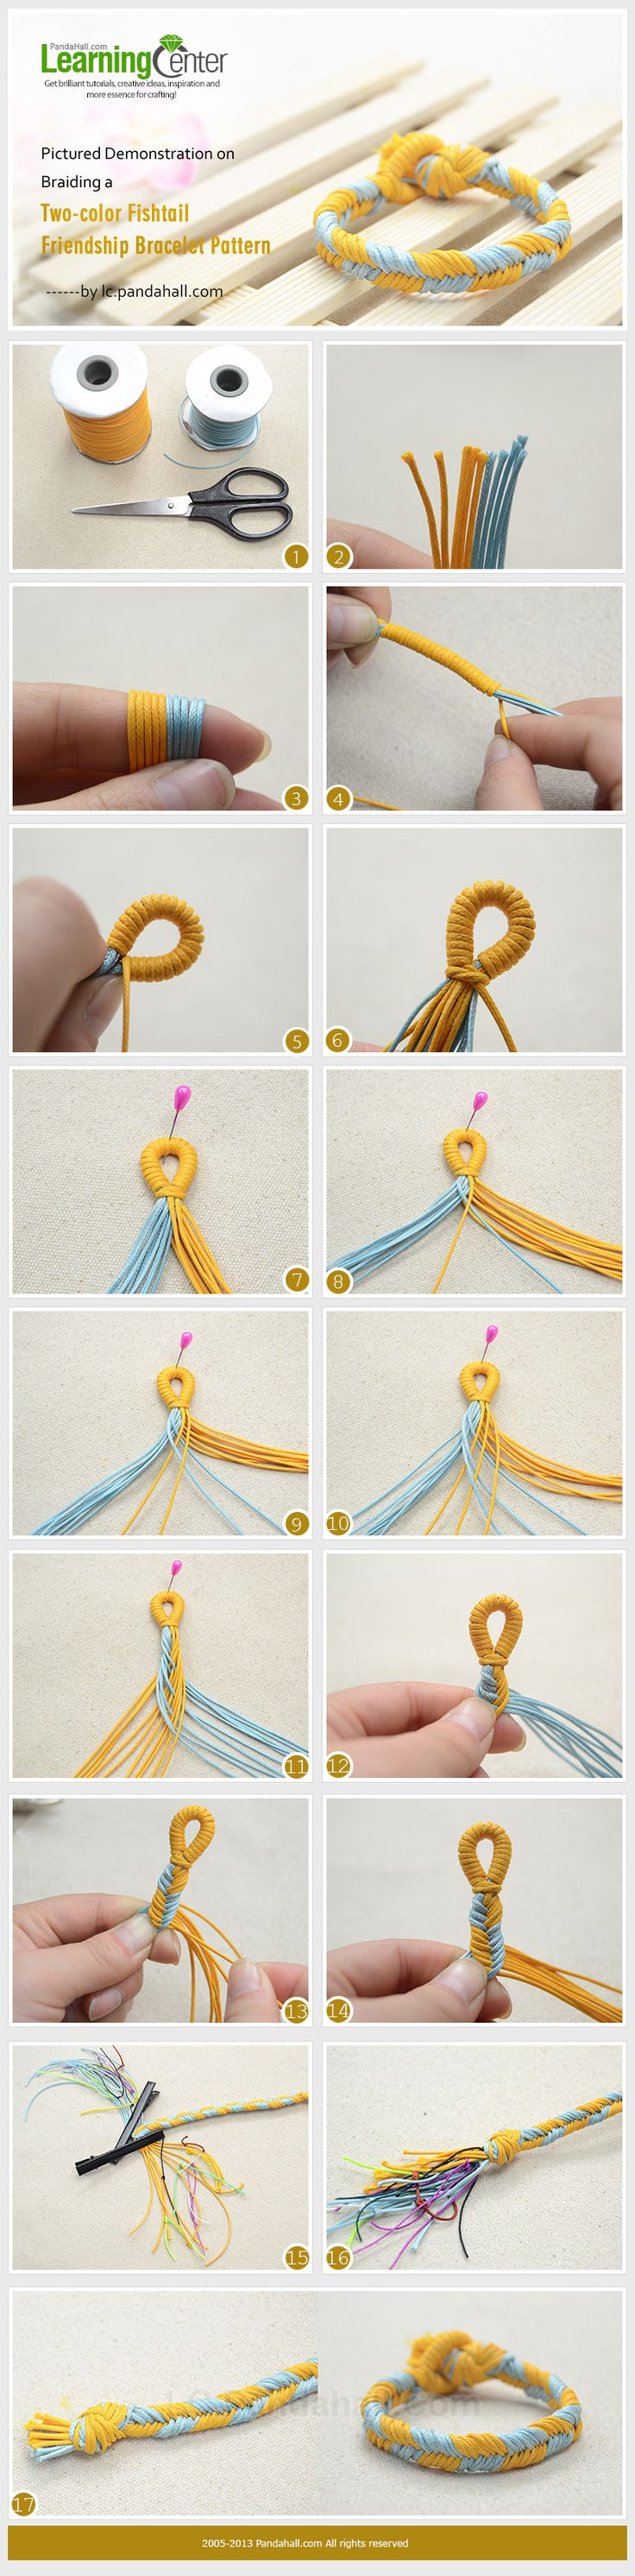 Pictured Demonstration on Braiding a Two-color Fishtail Friendship Bracelet Pattern